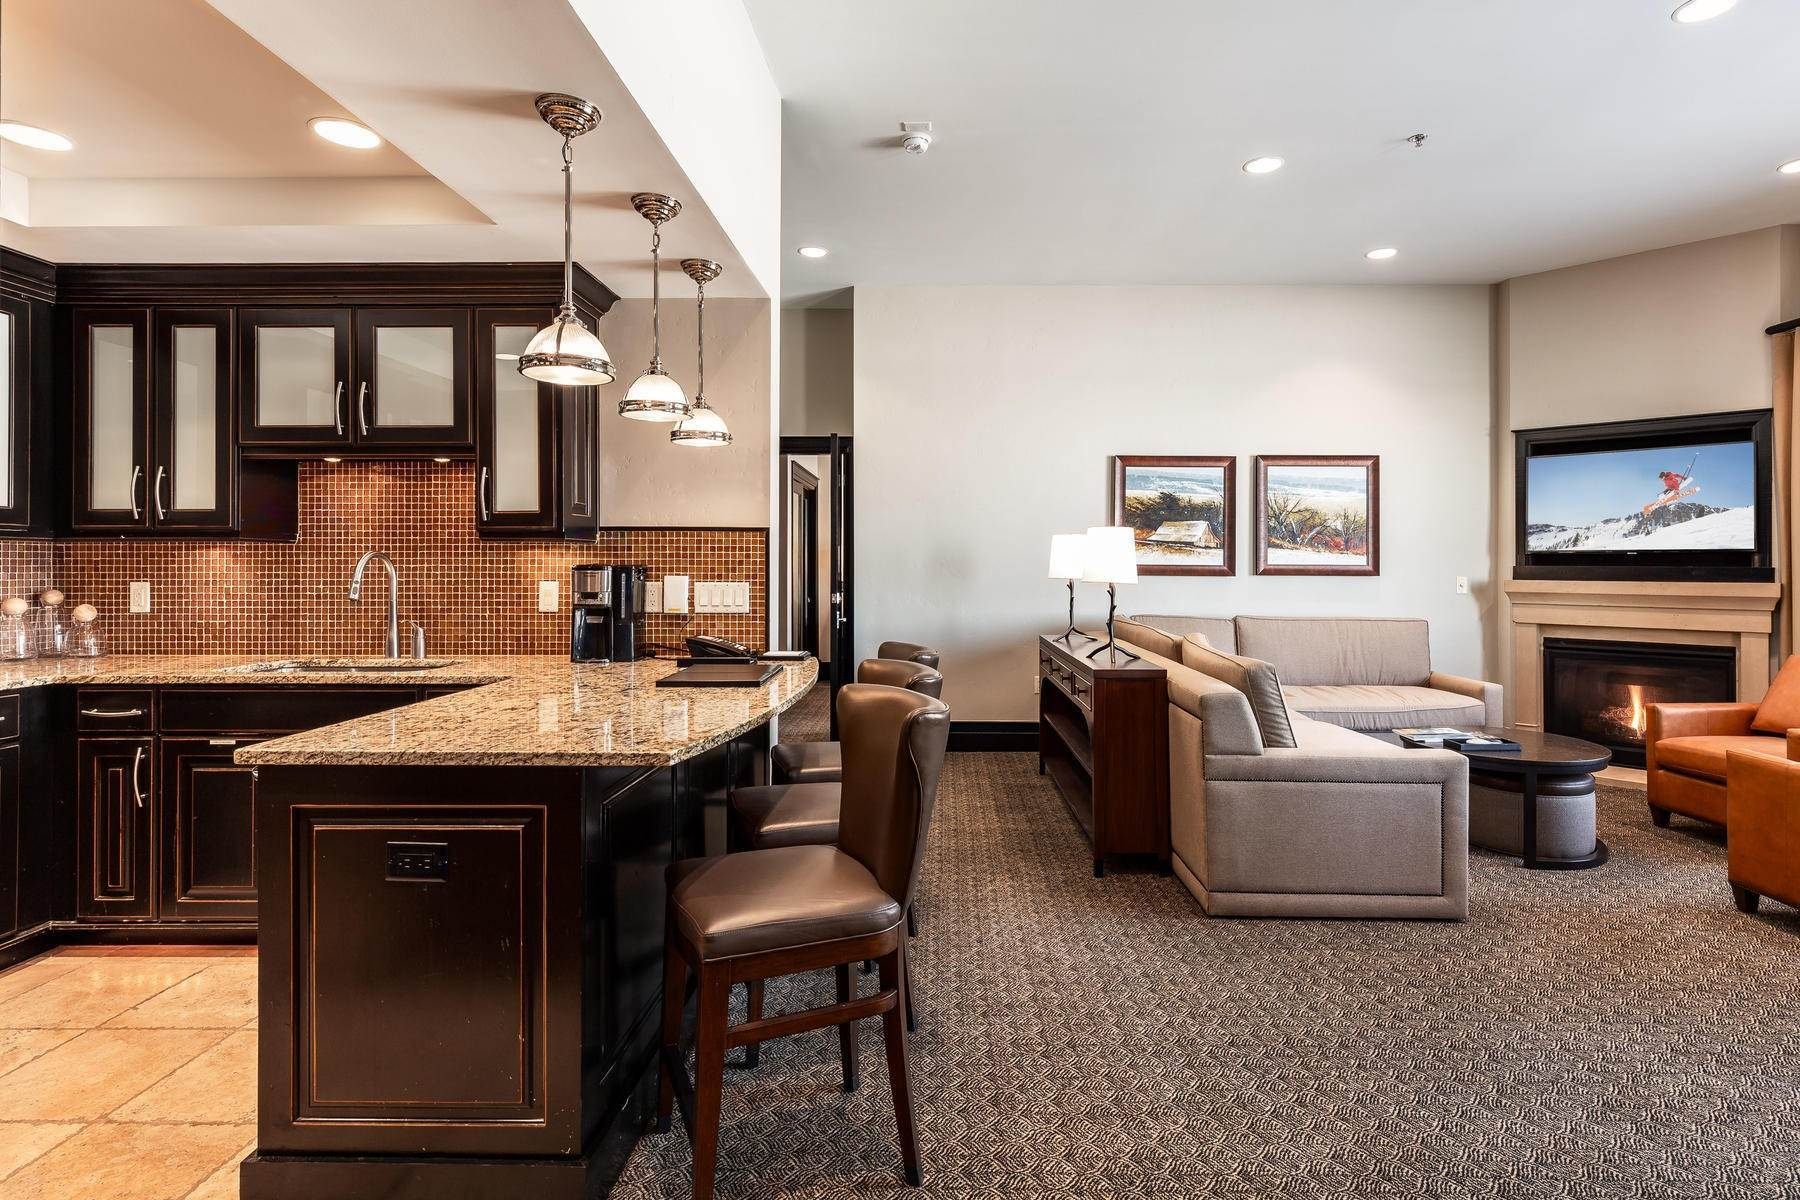 7. Condominiums at 2100 W Frostwood Boulevard #5172 Park City, Utah 84098 United States